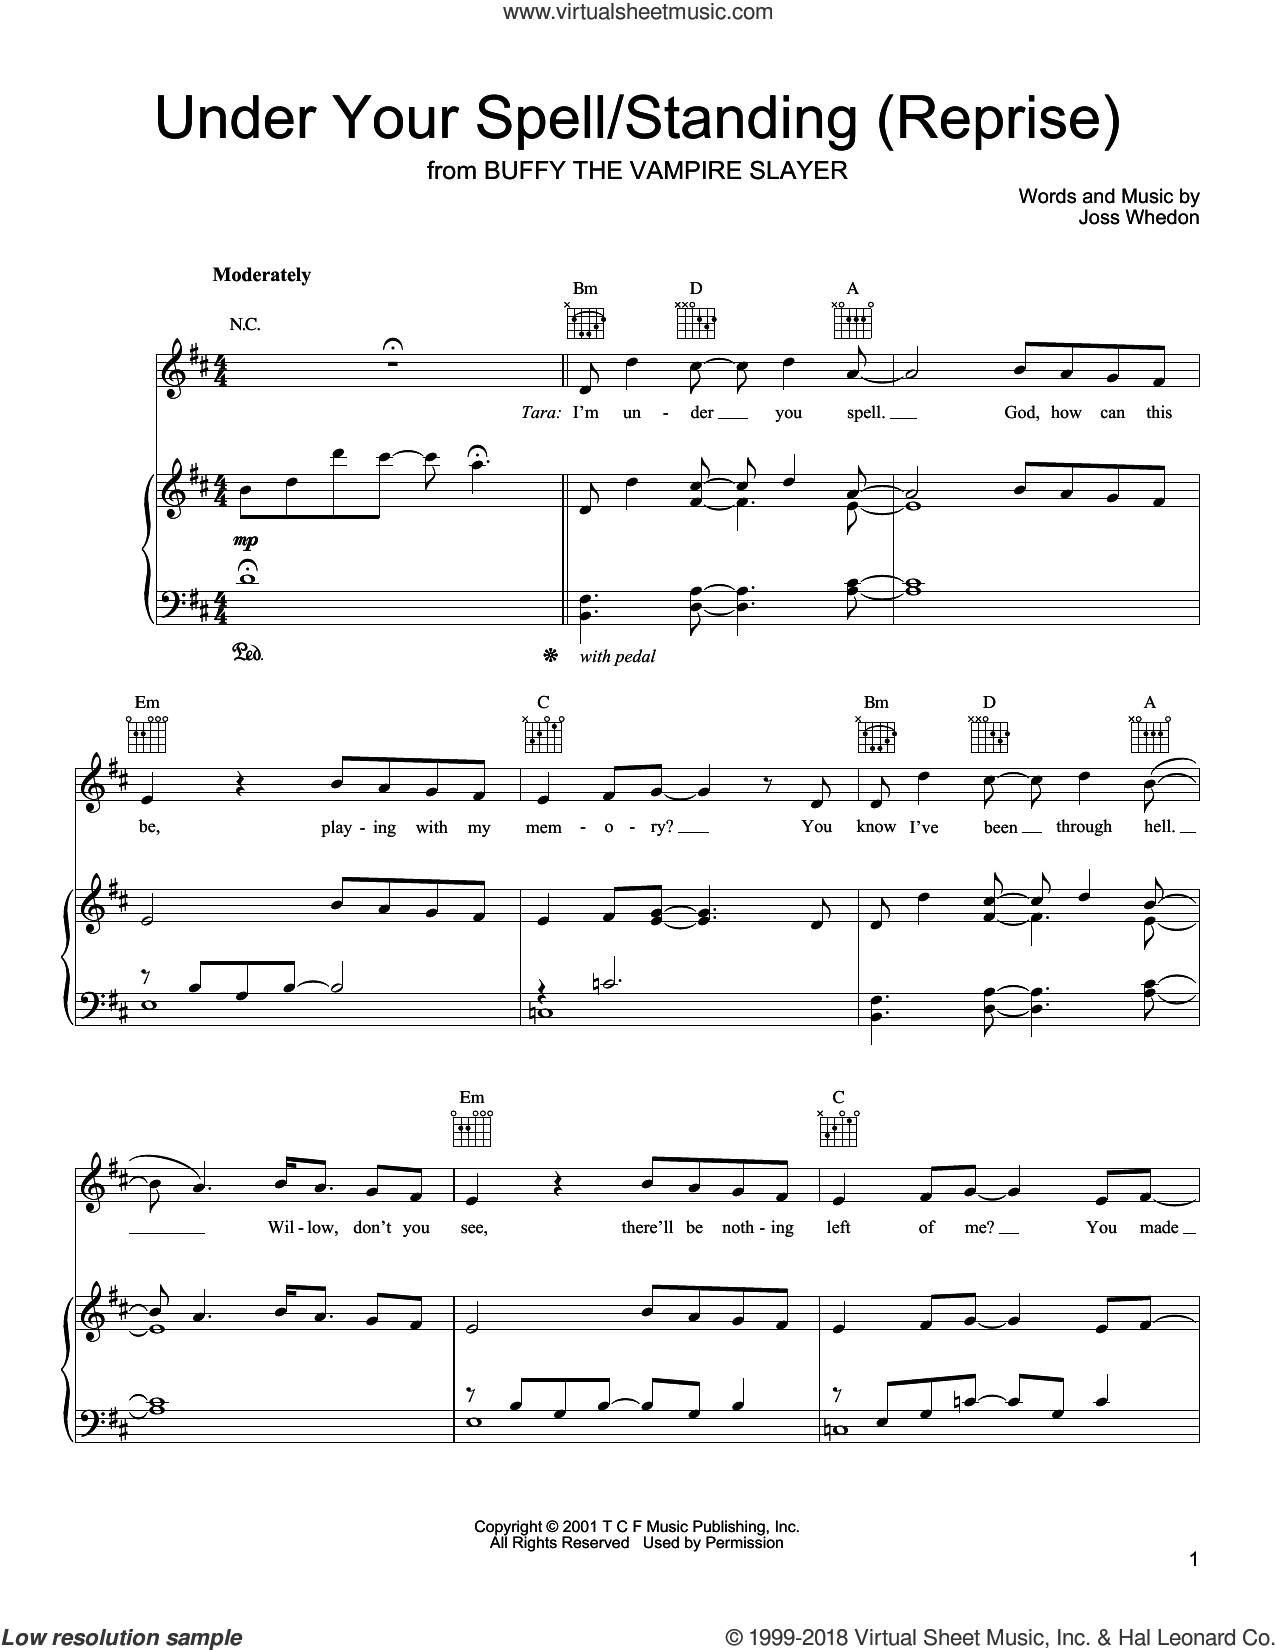 Under Your Spell/Standing (Reprise) sheet music for voice, piano or guitar by Joss Whedon and Buffy The Vampire Slayer (TV Series), intermediate skill level